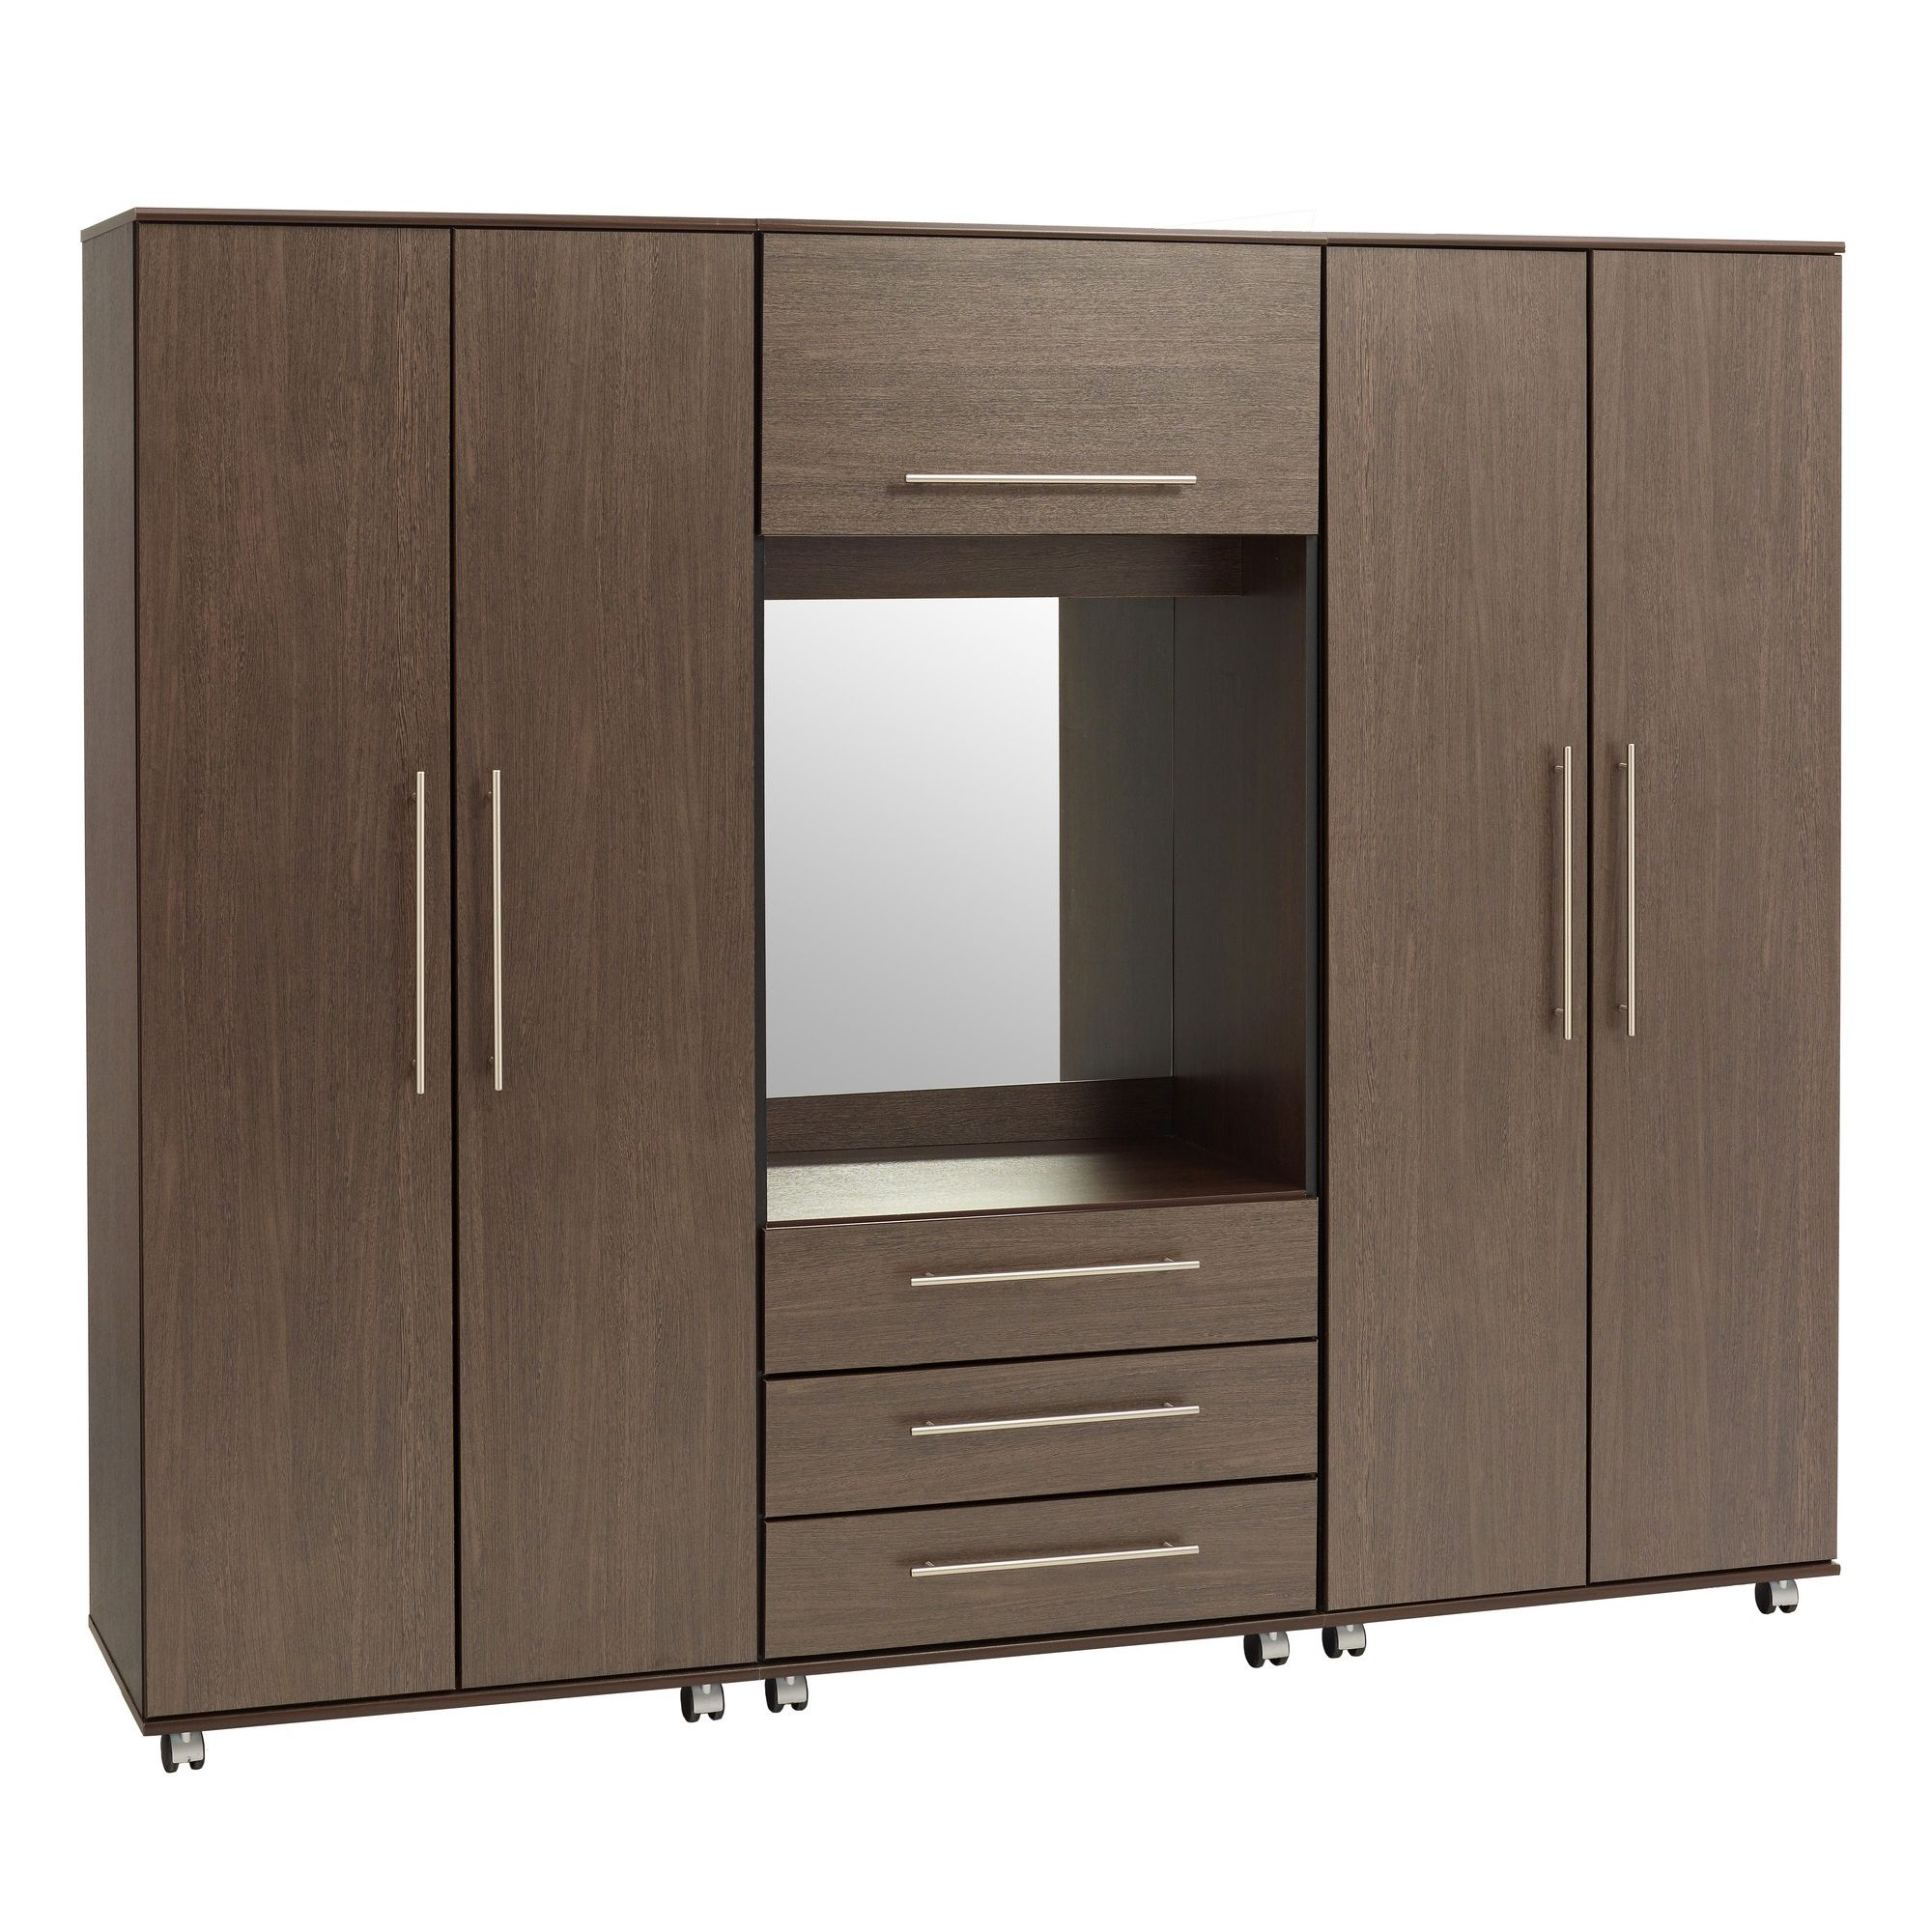 Ideal Furniture New York Fitment Wardrobe - Oak at Tesco Direct